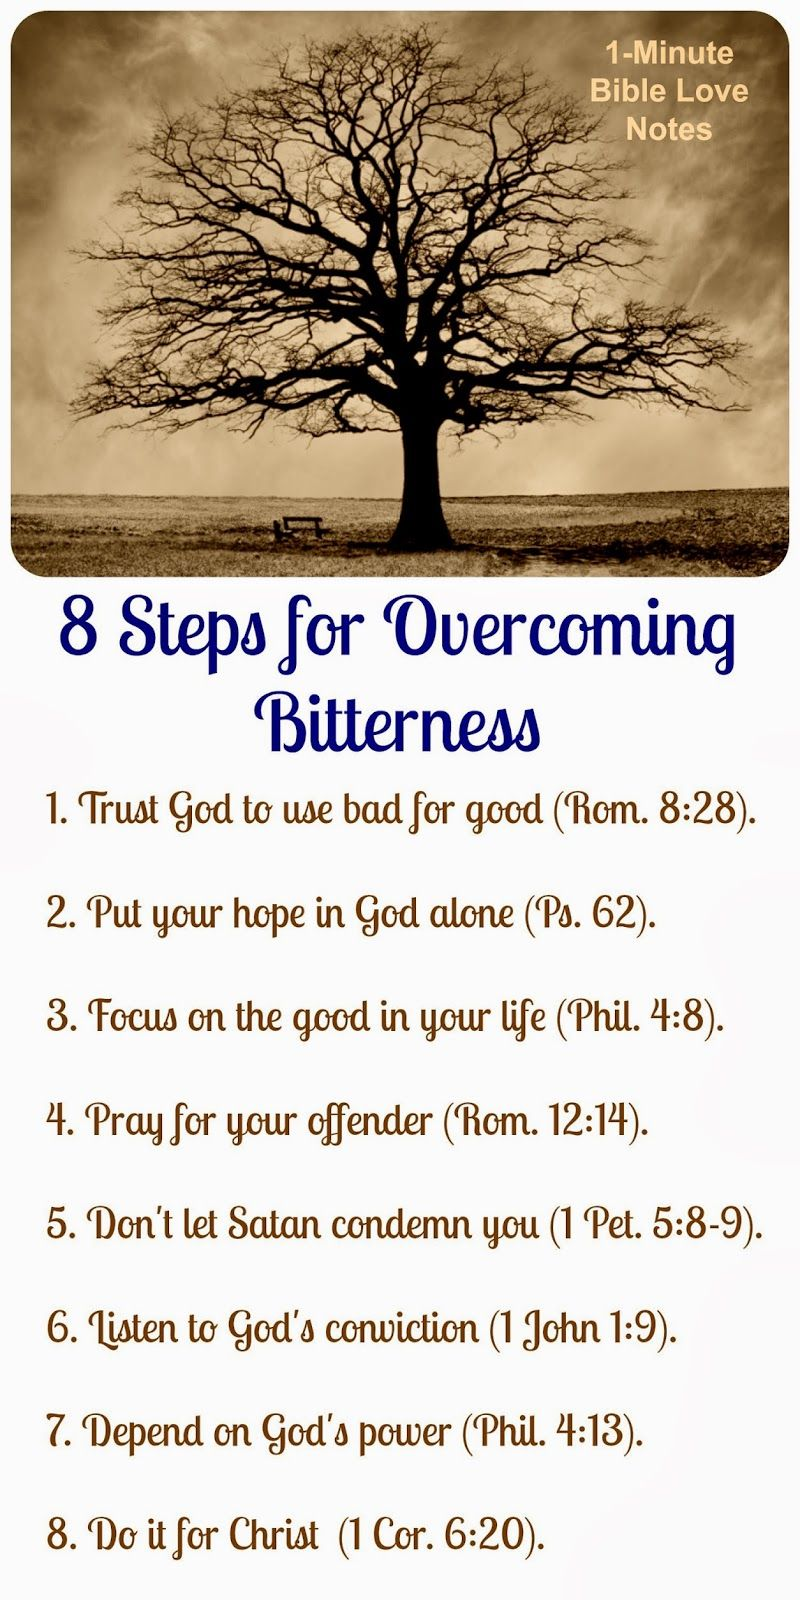 how to deal with bitterness biblically